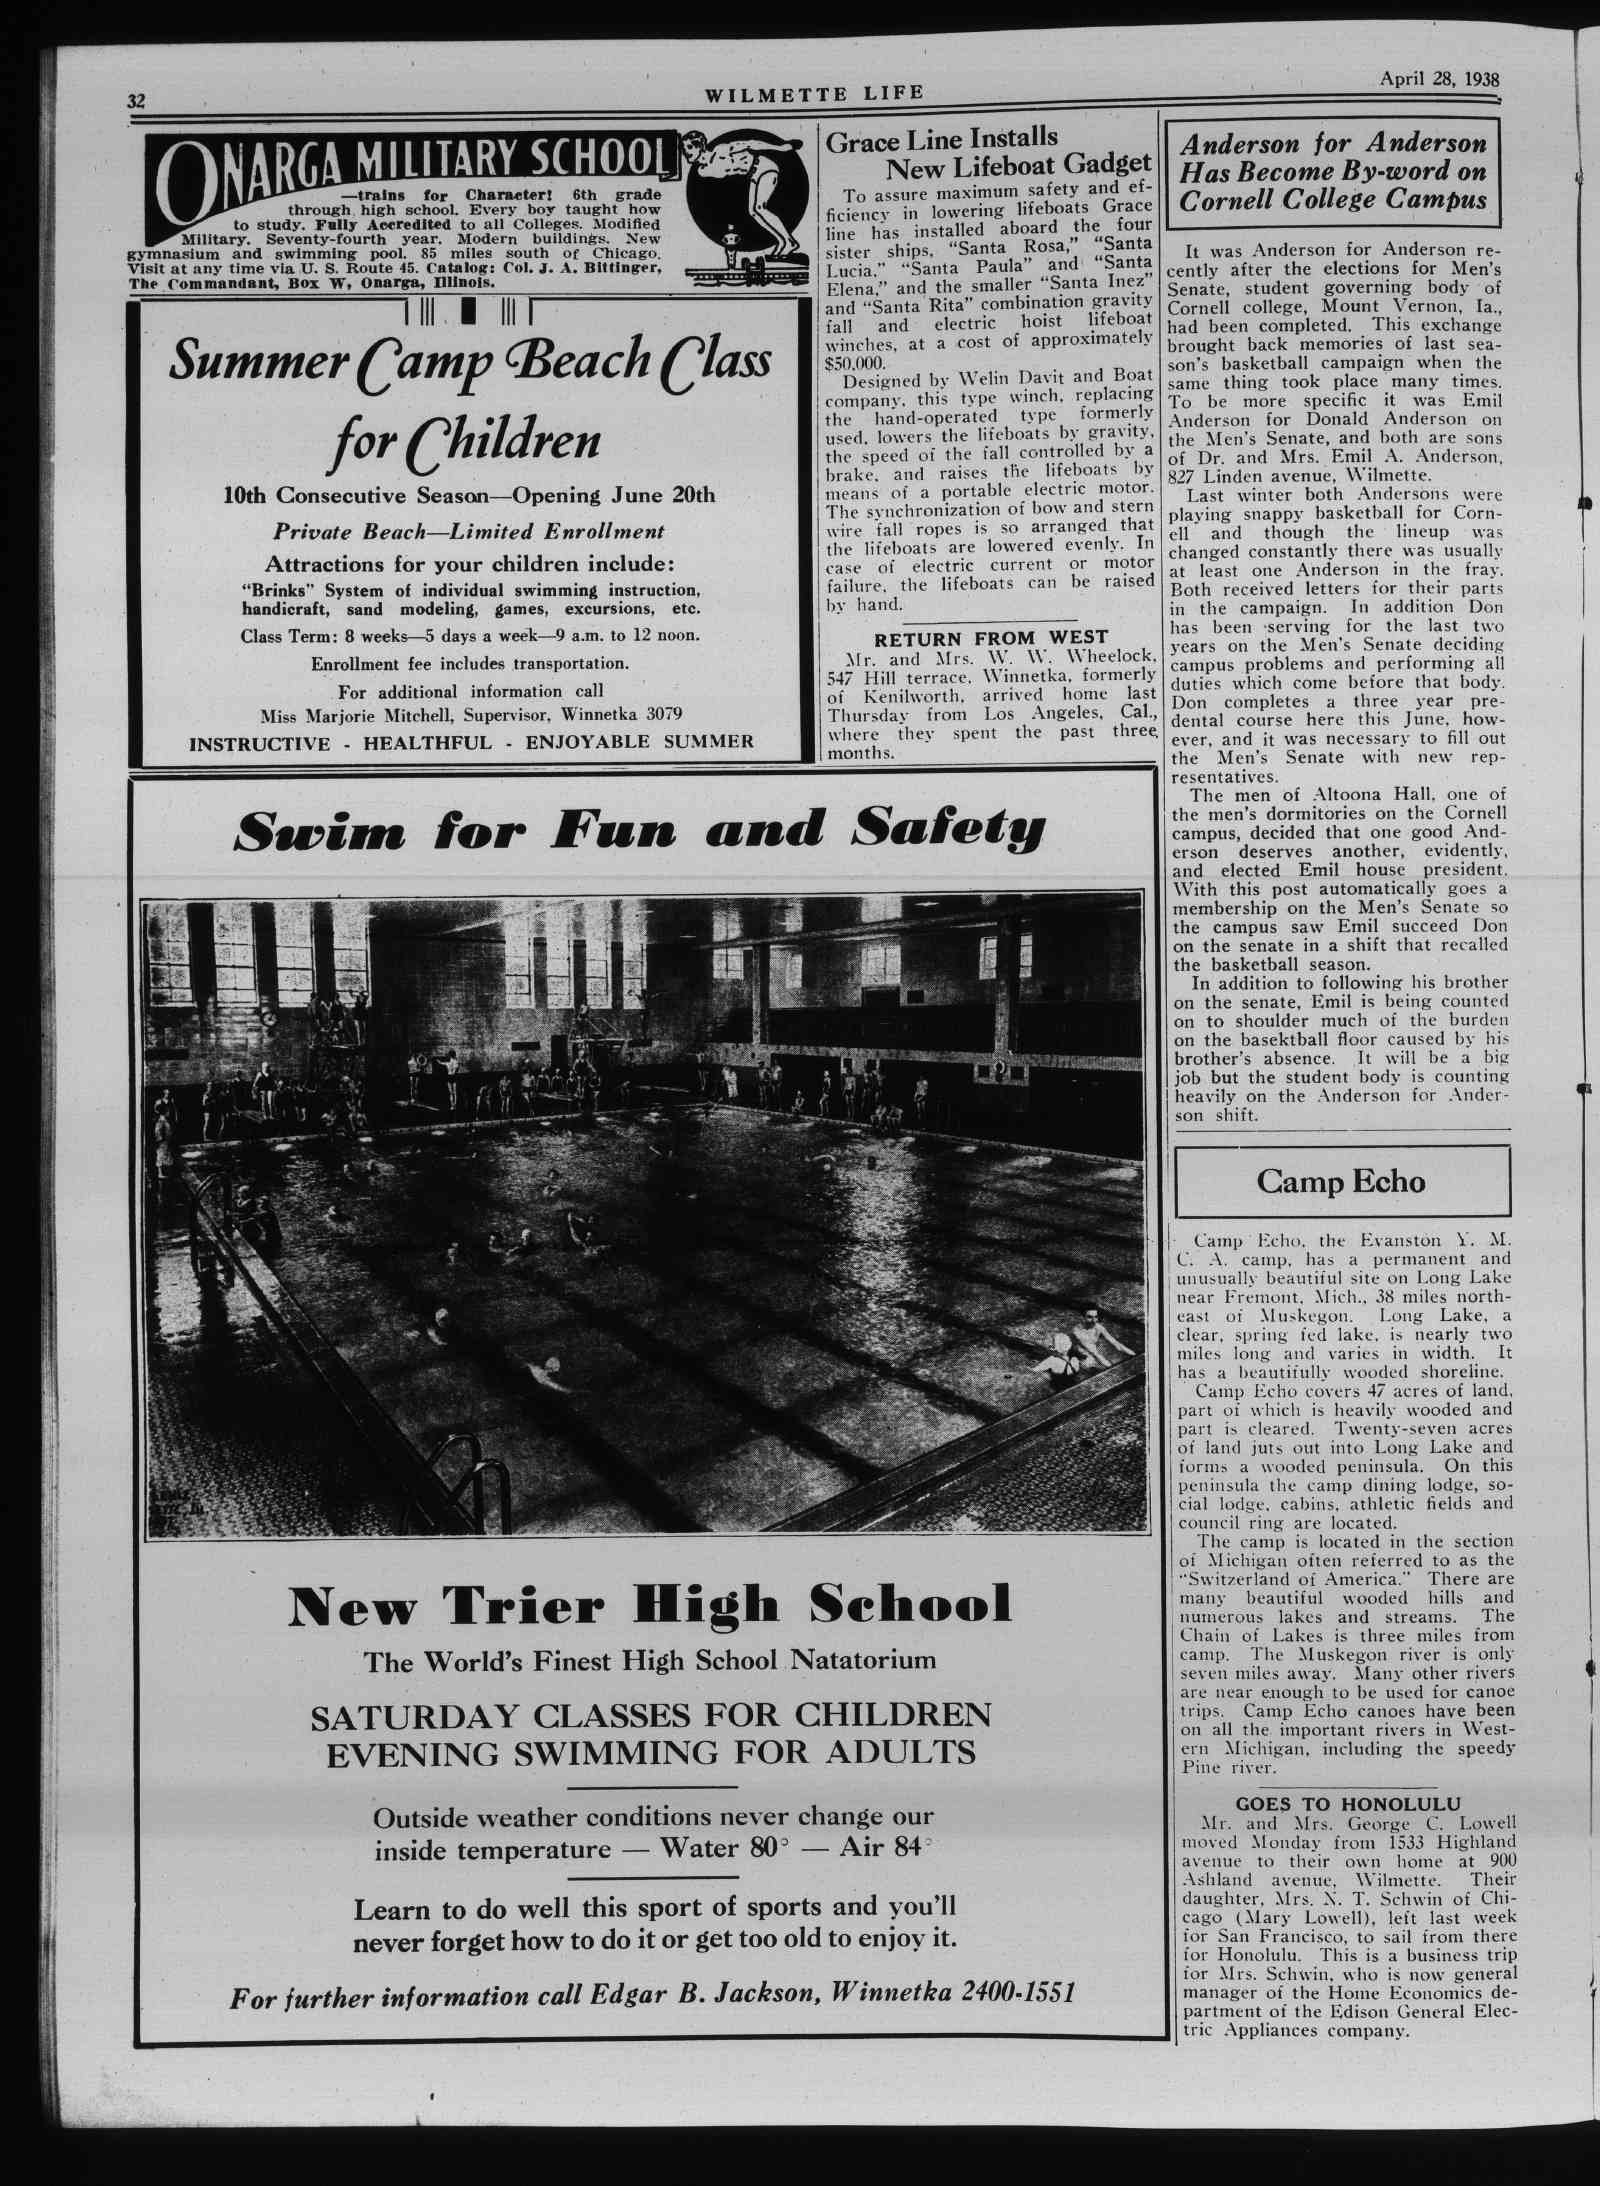 Wilmette Life (Wilmette, Illinois), 28 Apr 1938